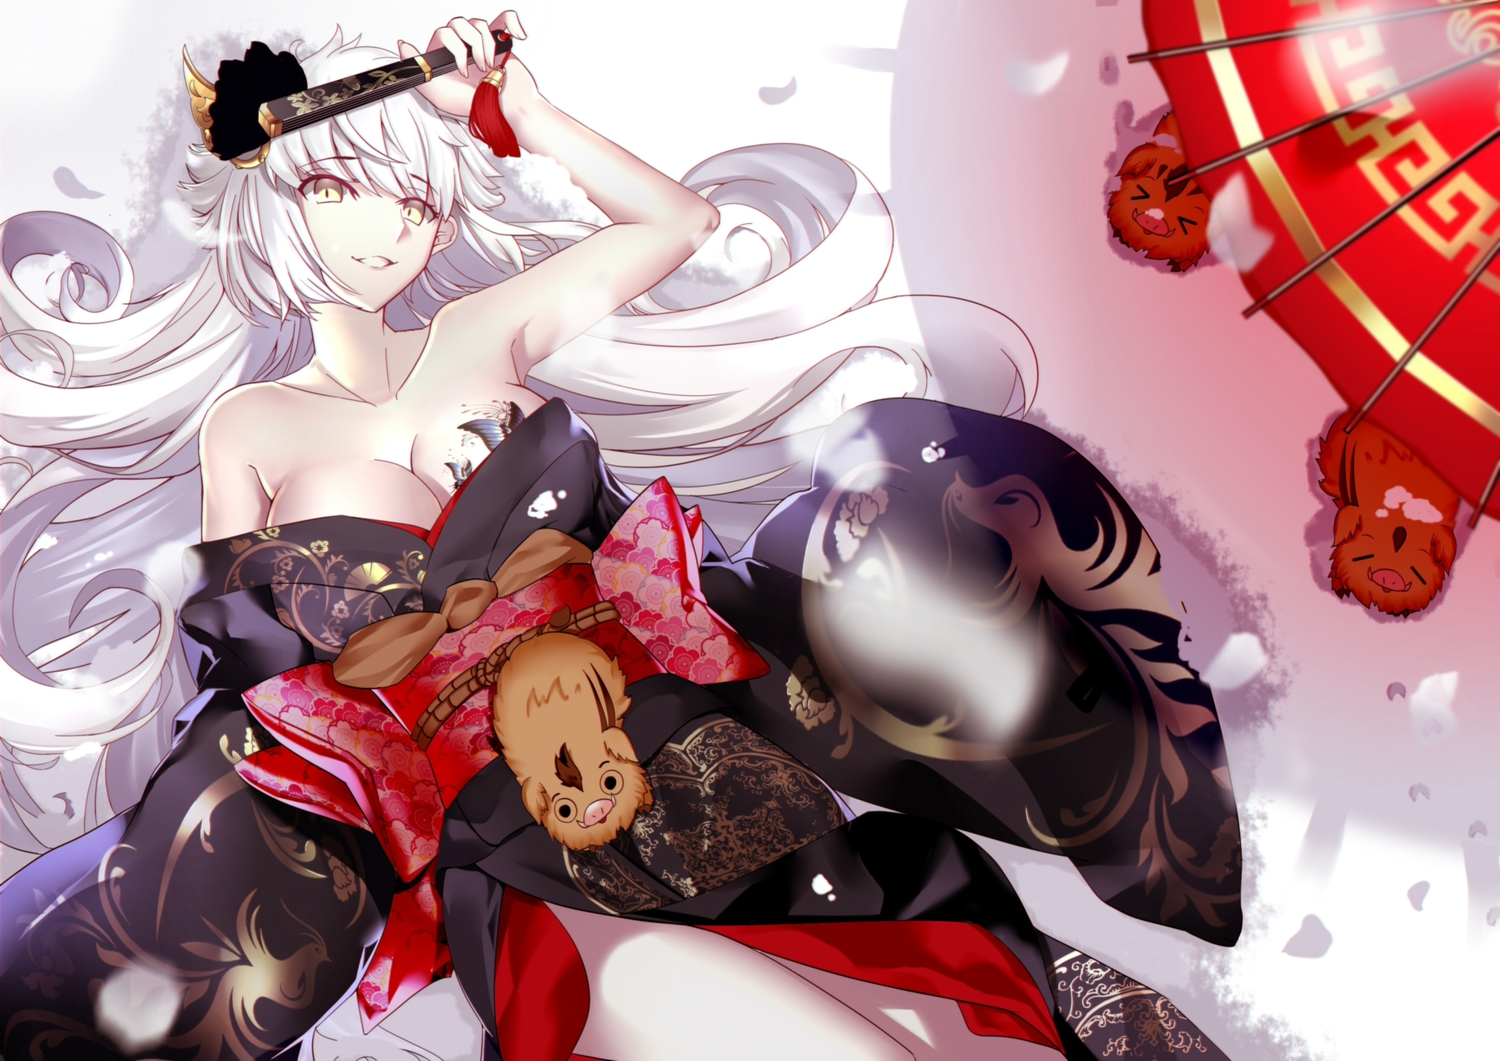 animal breasts cleavage fan fate/grand_order fate_(series) japanese_clothes jeanne_d'arc_alter jeanne_d'arc_(fate) kimono long_hair no_bra paperfinger snow tattoo umbrella white_hair yellow_eyes